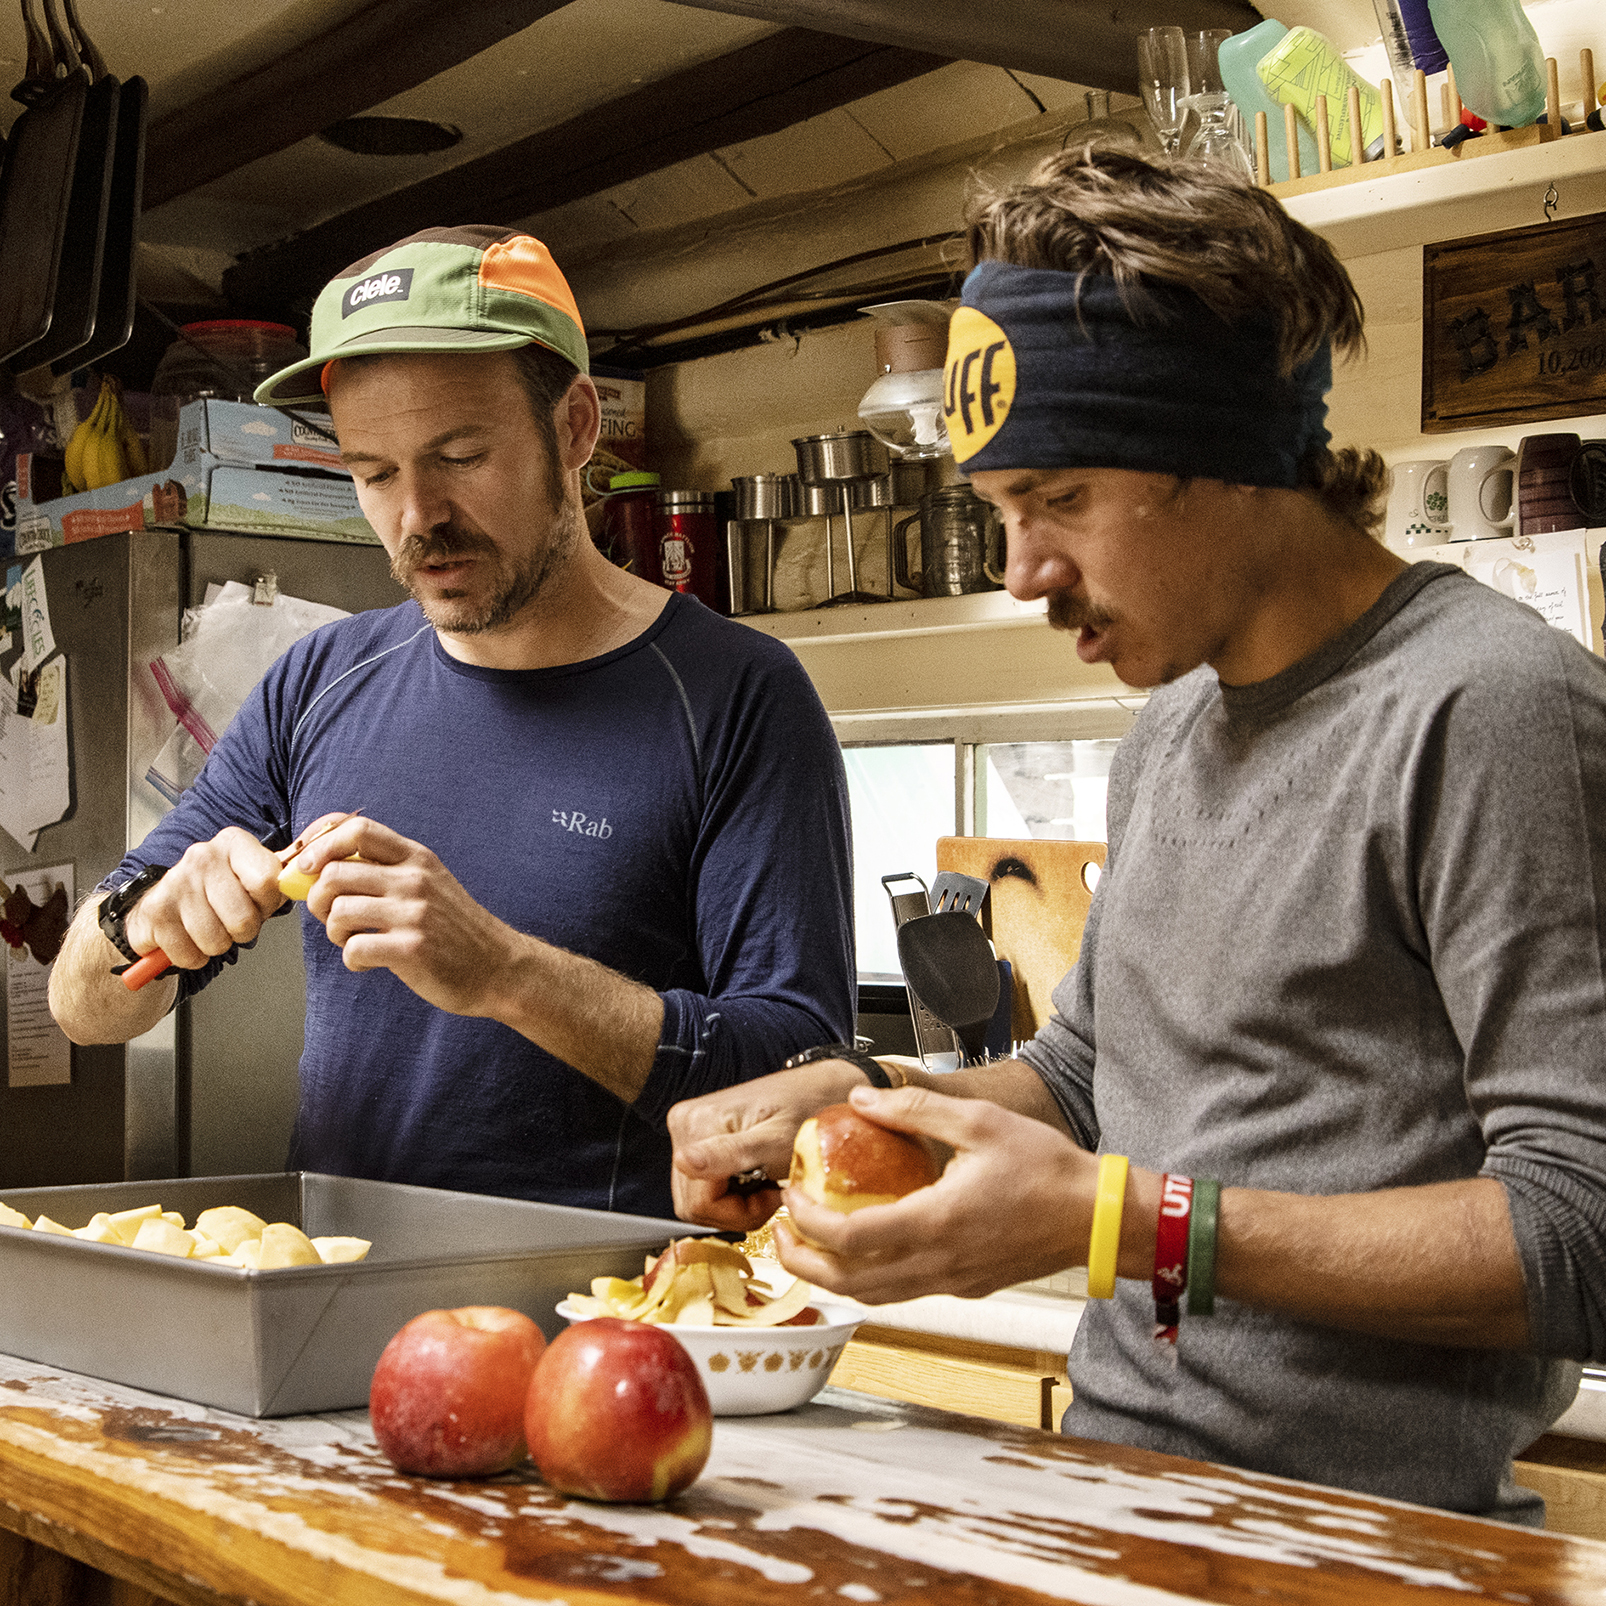 Eat, Run, Enjoy - Barr CampBarr Camp, Colorado is truly a remote place, 3000 meter up on Pikes Peak. We and Billy White met ultra runner Zach Miller who had invited us to his home and workplace to talk about food and his love for running.